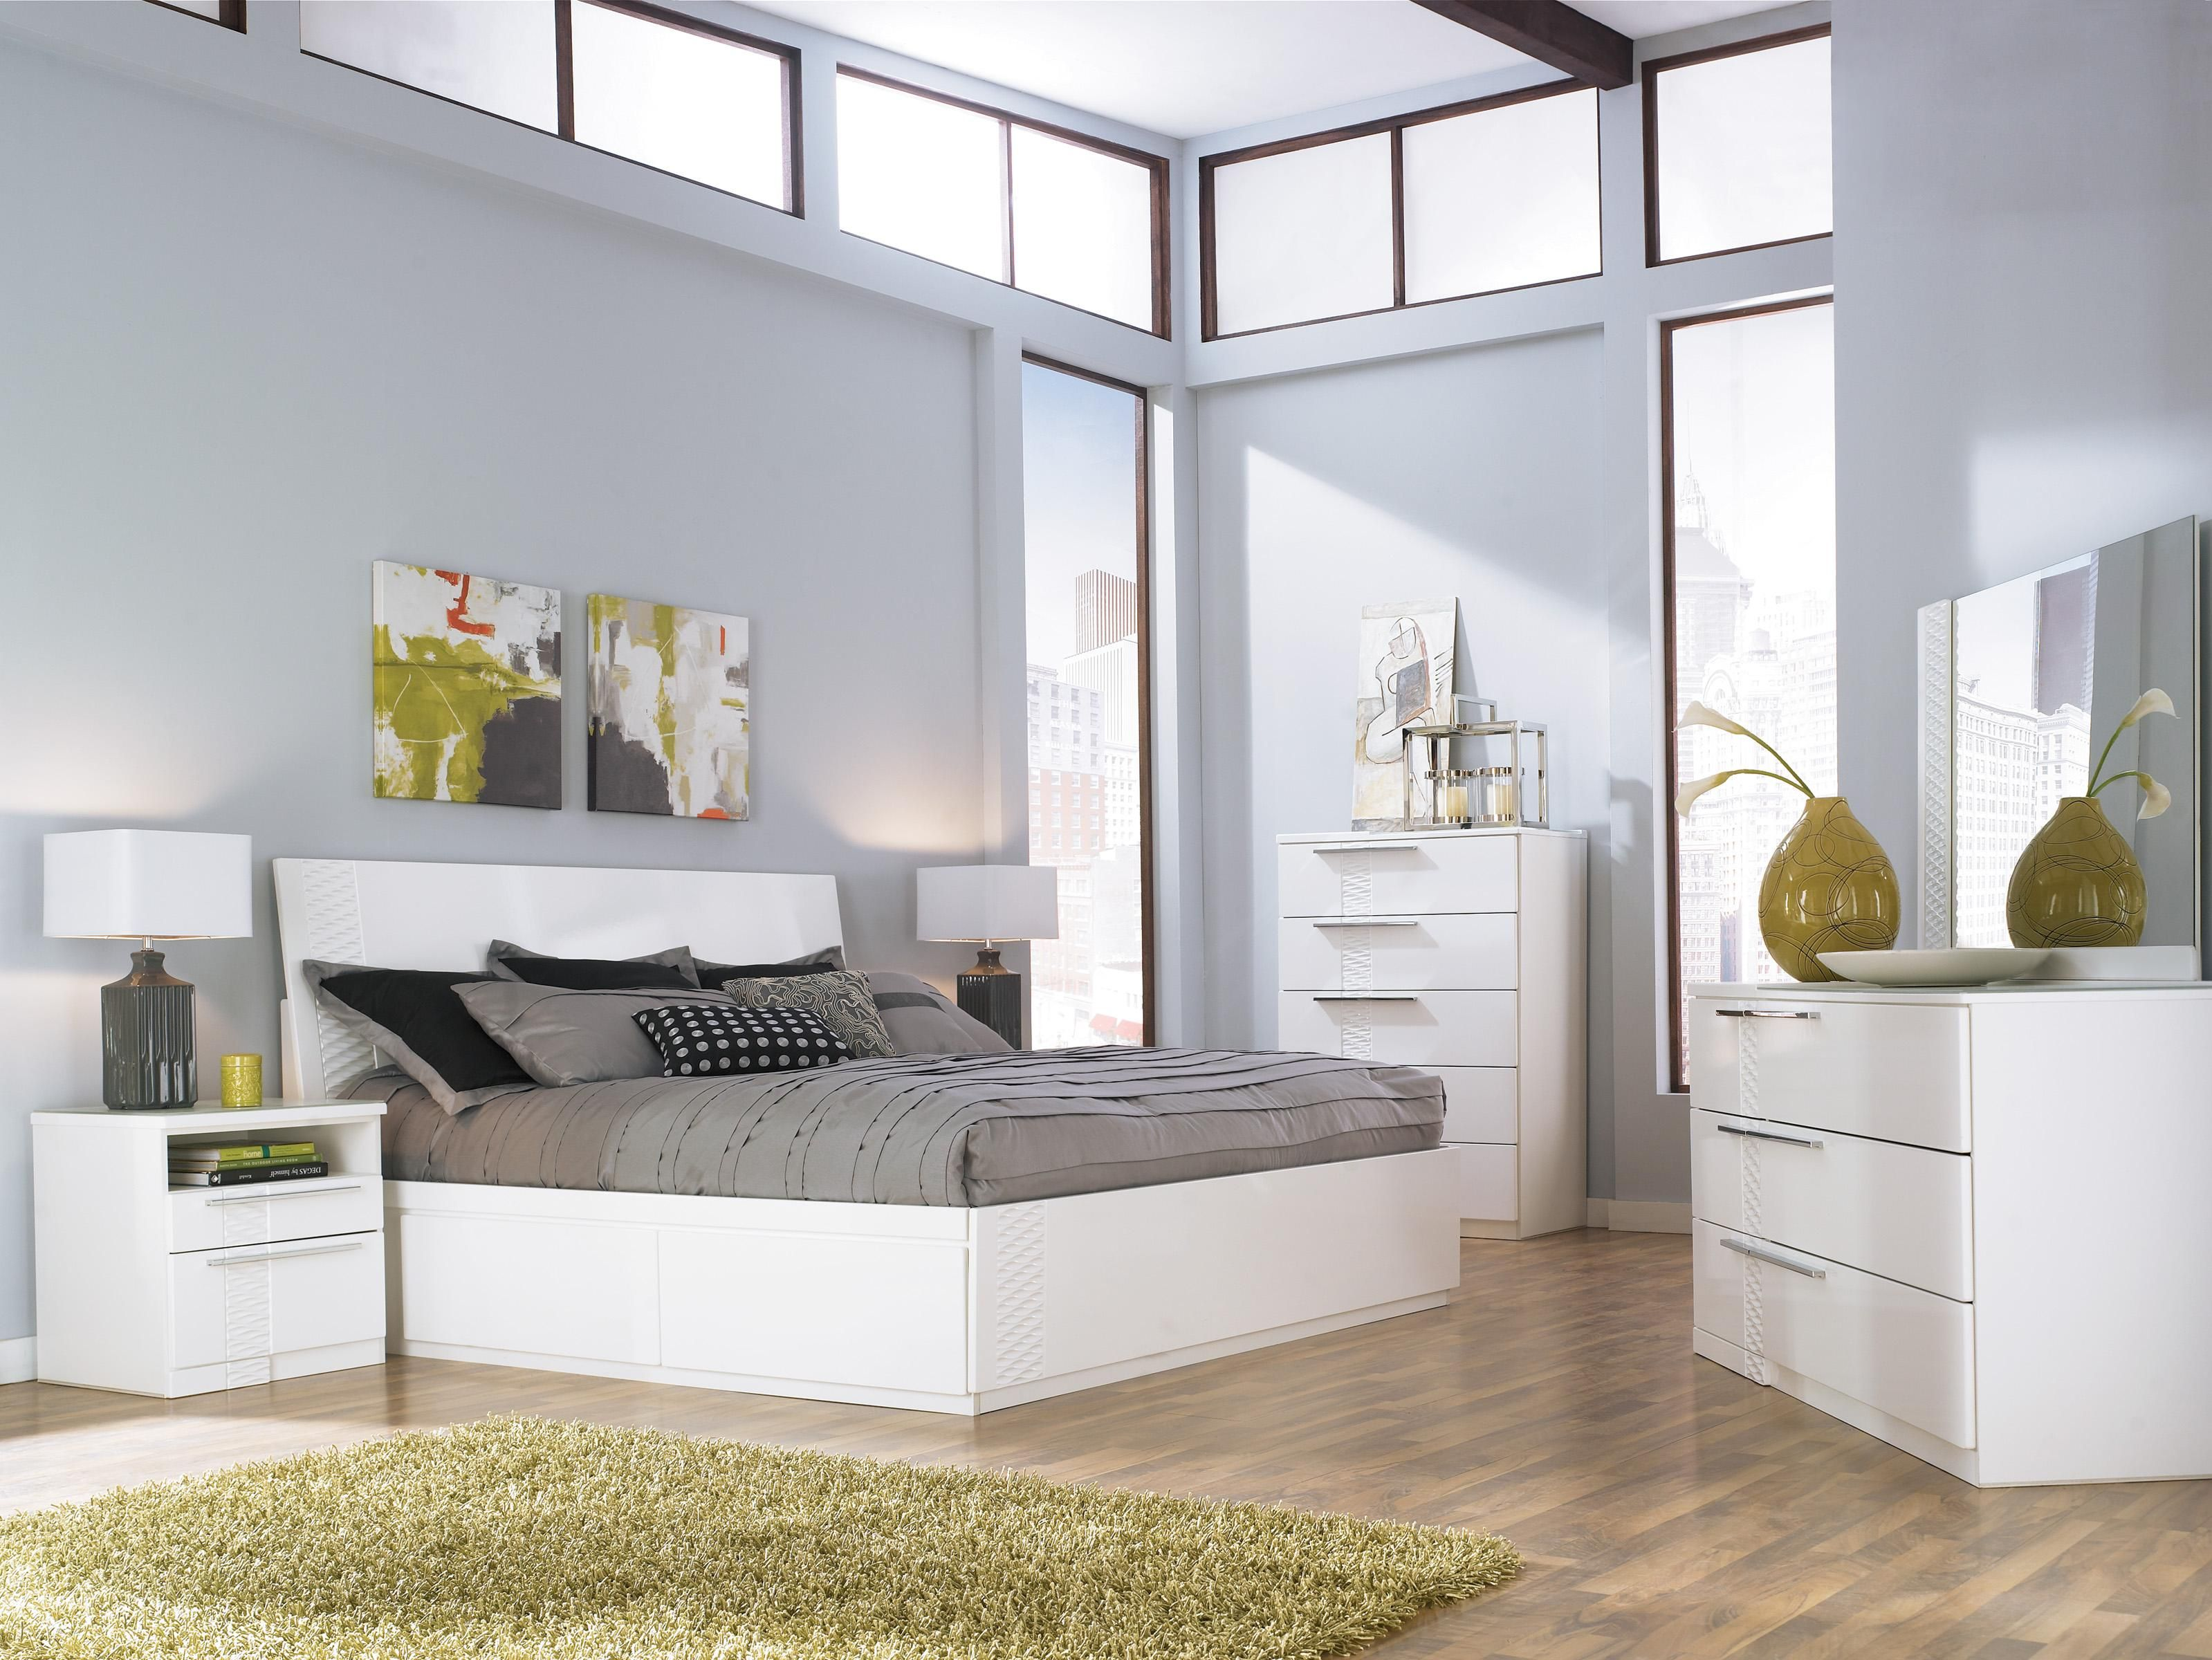 Millennium jansey metro modern white queen bed with headboard ...